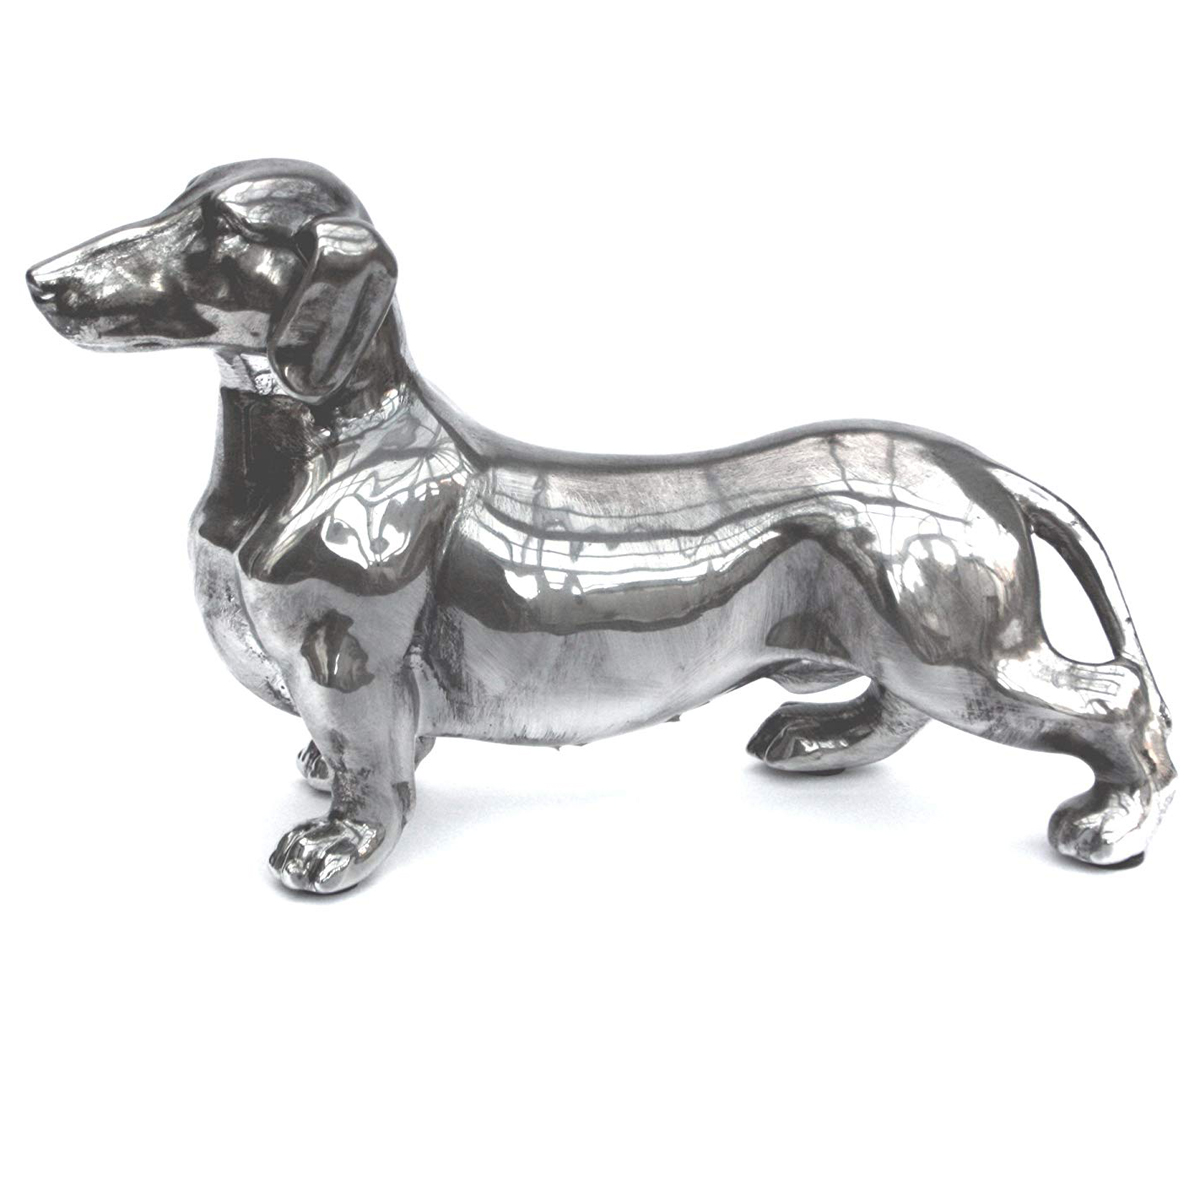 MP147A_1 Antique Silver Standing Dachshund Dog Ornament